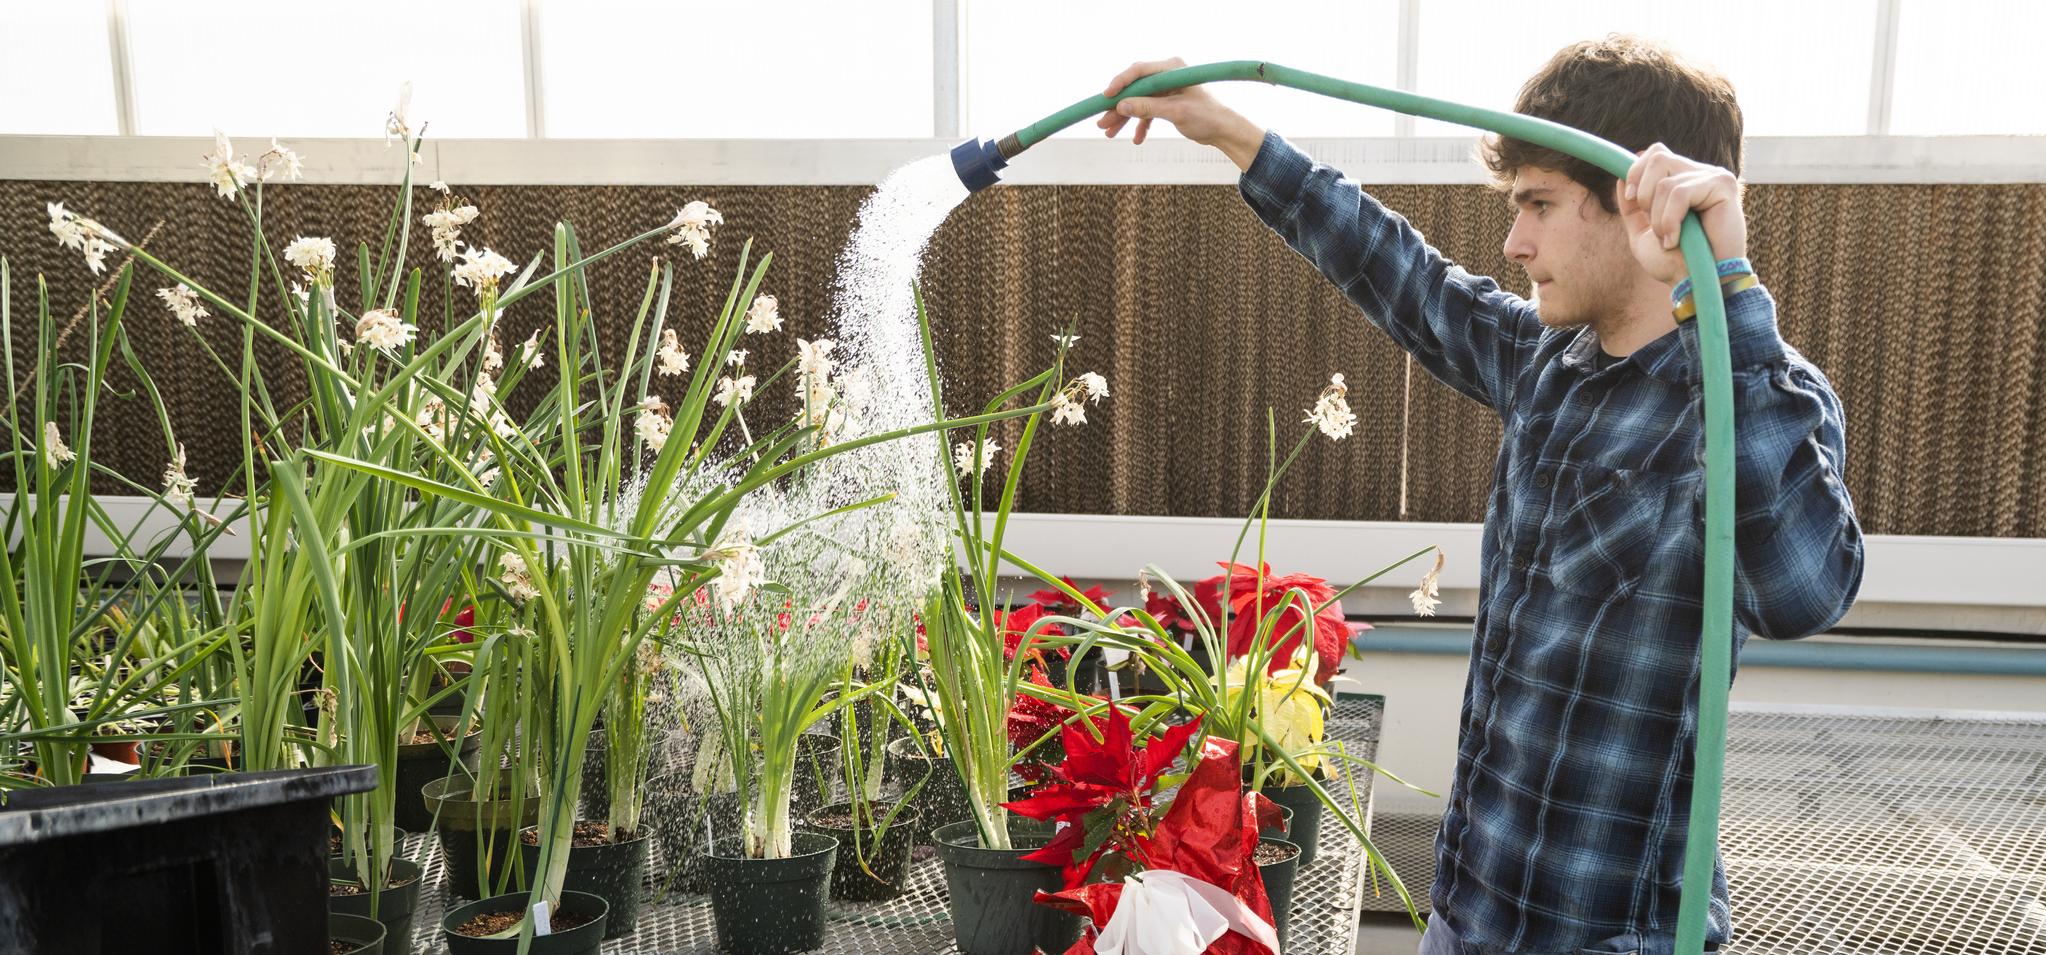 Horticulture student watering plants in the greenhouse